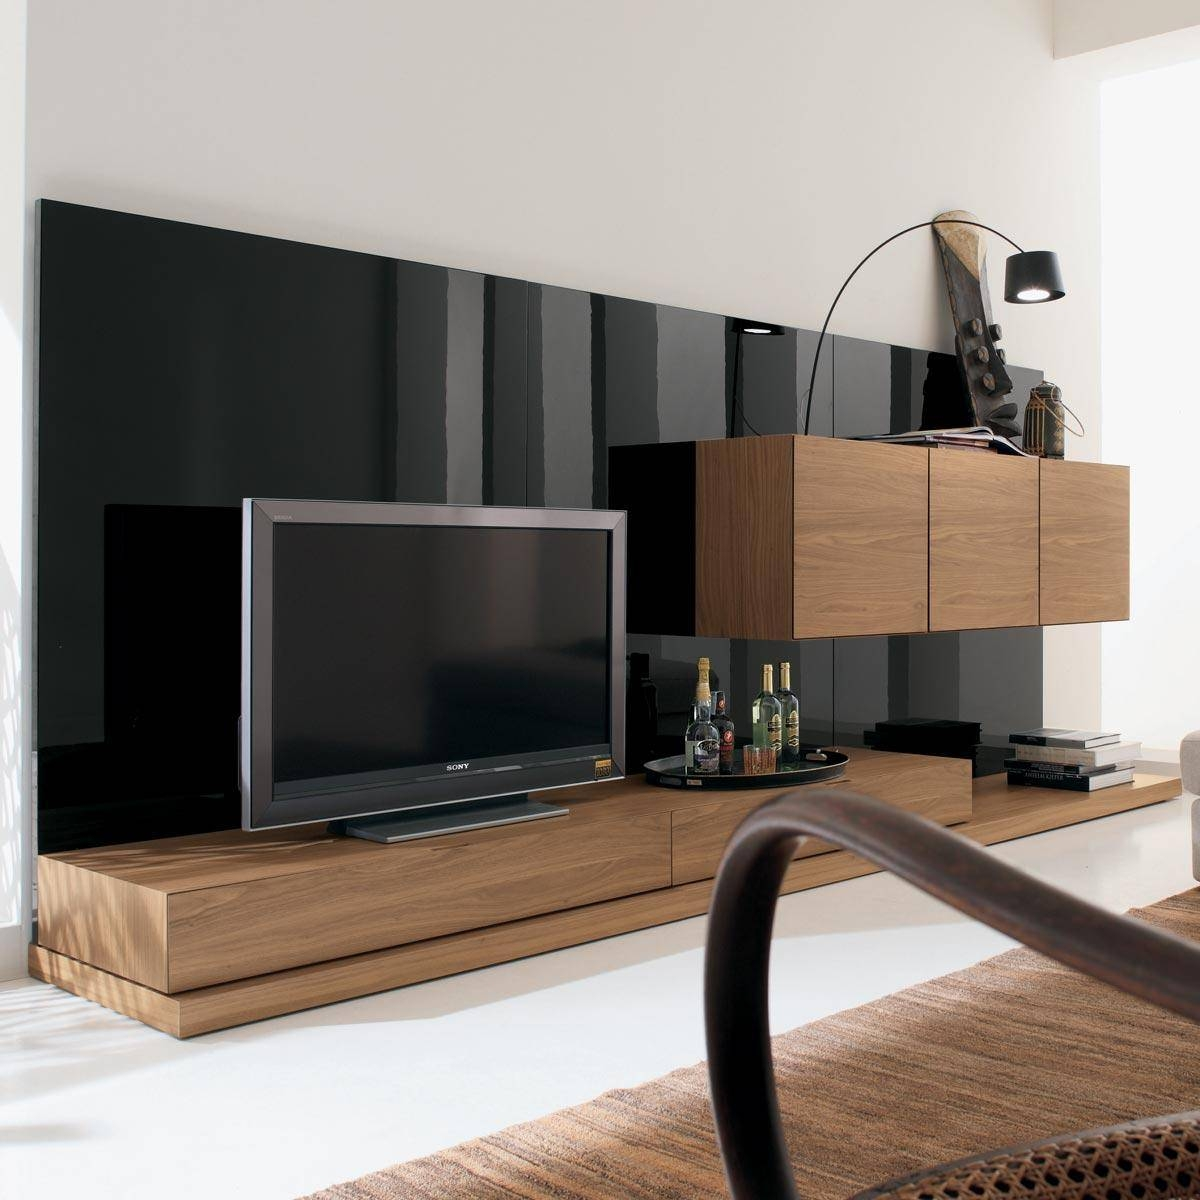 Solid Wood Tv Stand Also Long Tv Stand And Black Wall Living Room within Long Low Tv Stands (Image 10 of 15)